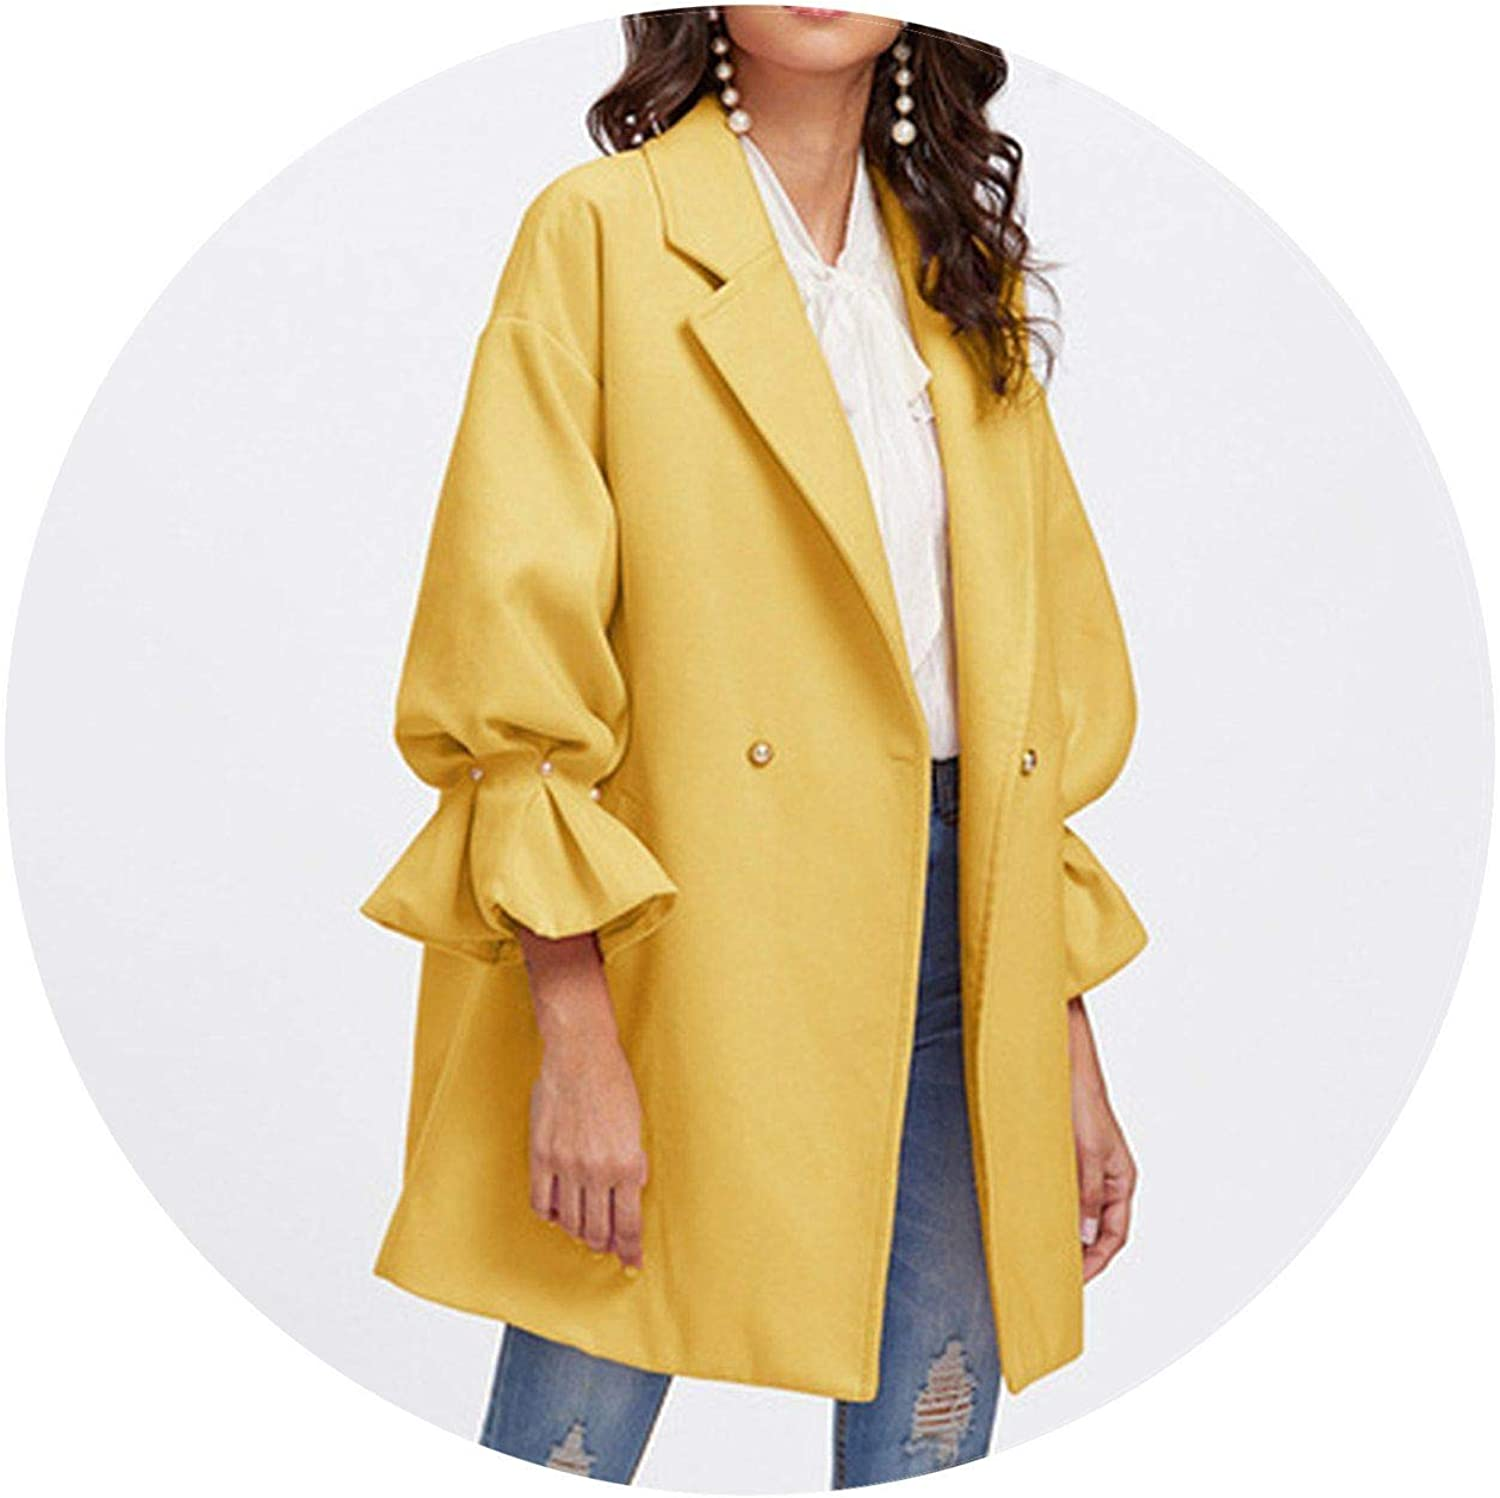 Jifnhtrs Yellow Elegant Drop Shoulder Pearl Detail Ruffle Cuff Coat Women Minimalist Clothes